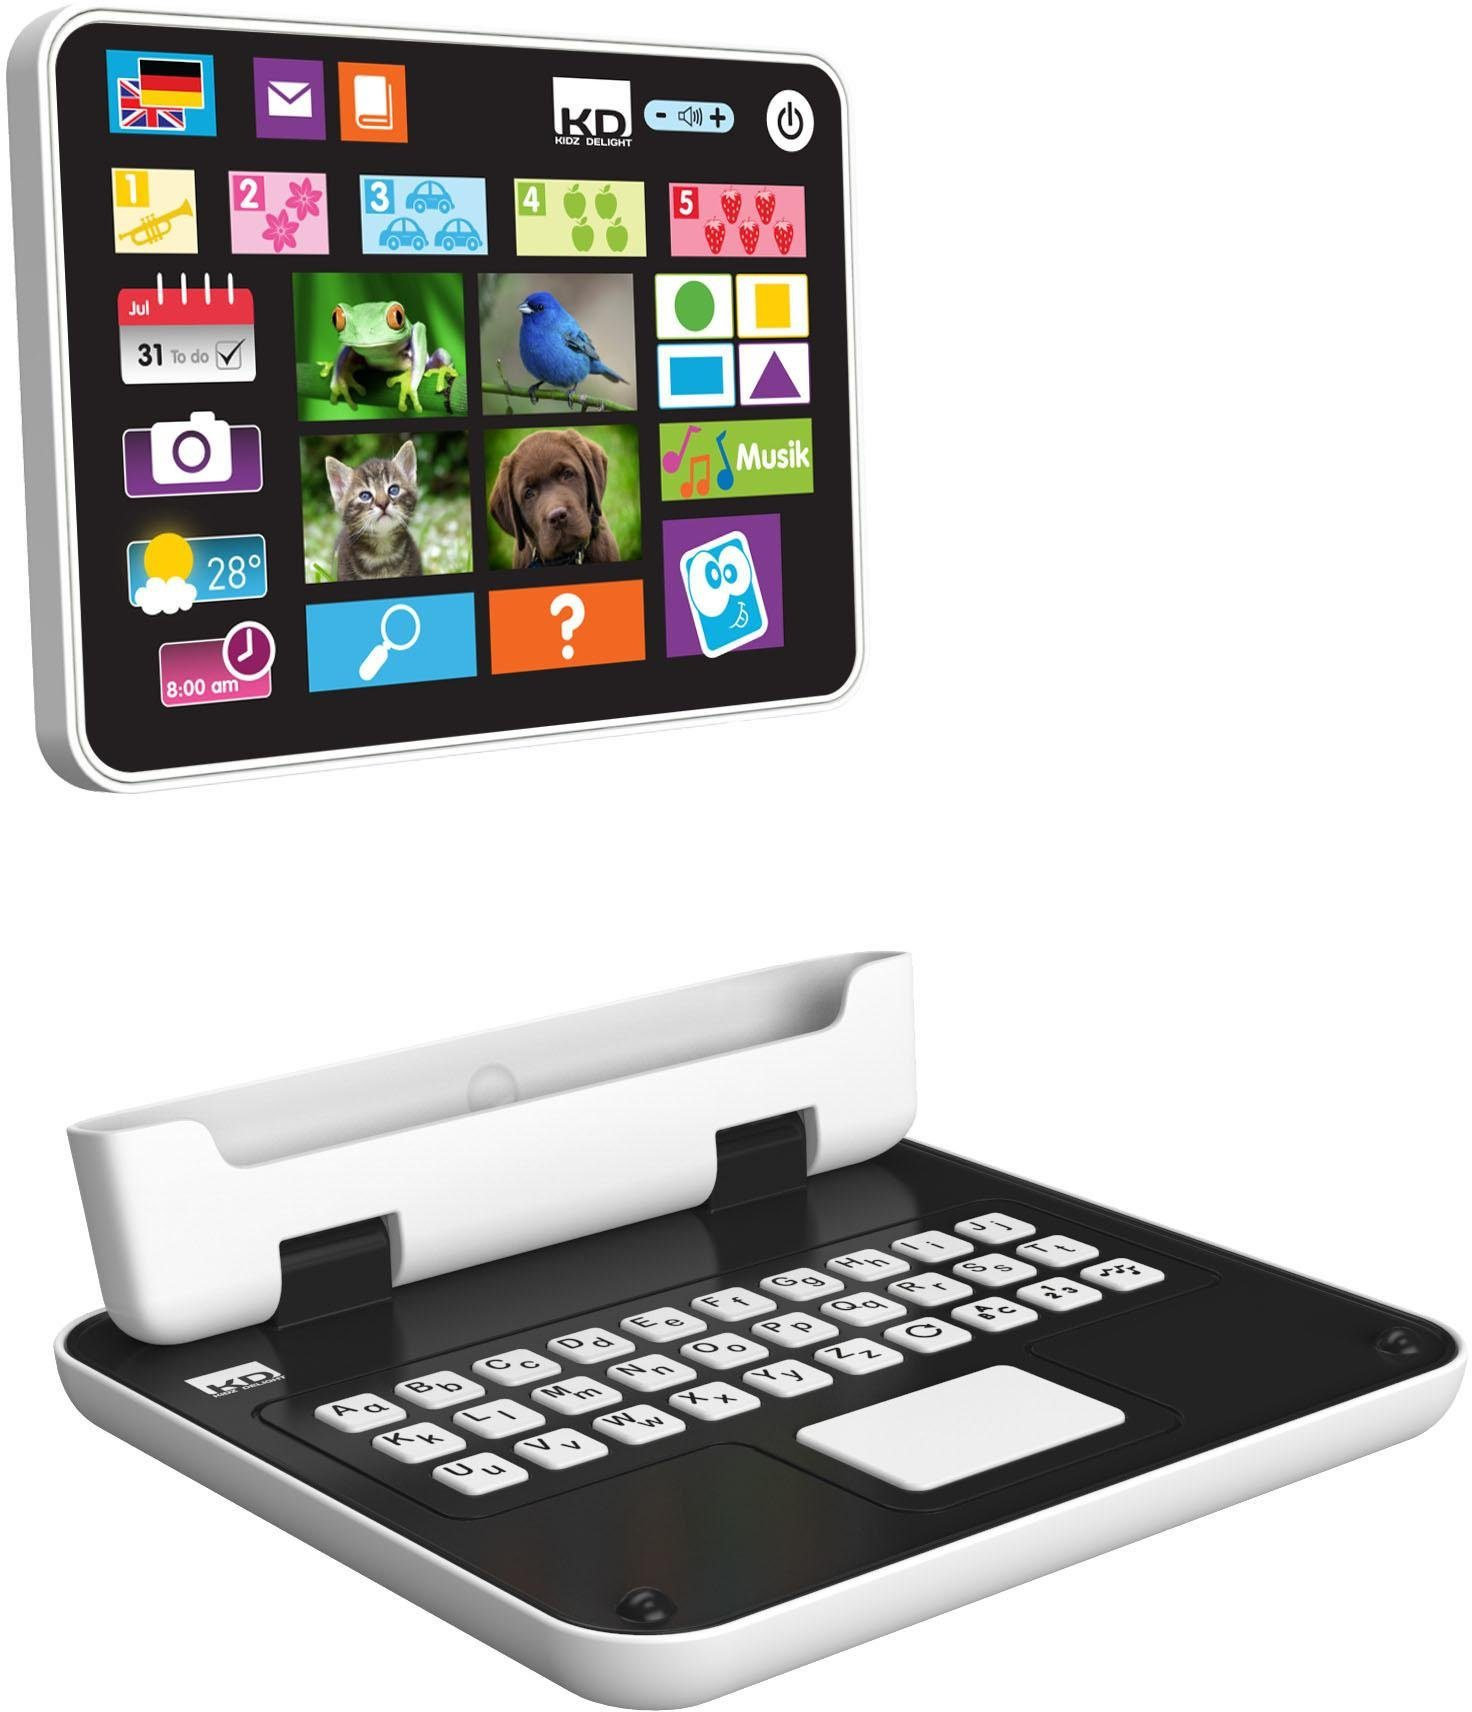 KD Kidz Delight, Kindertablet, »Tech Too My first 2 in 1 Tablet«